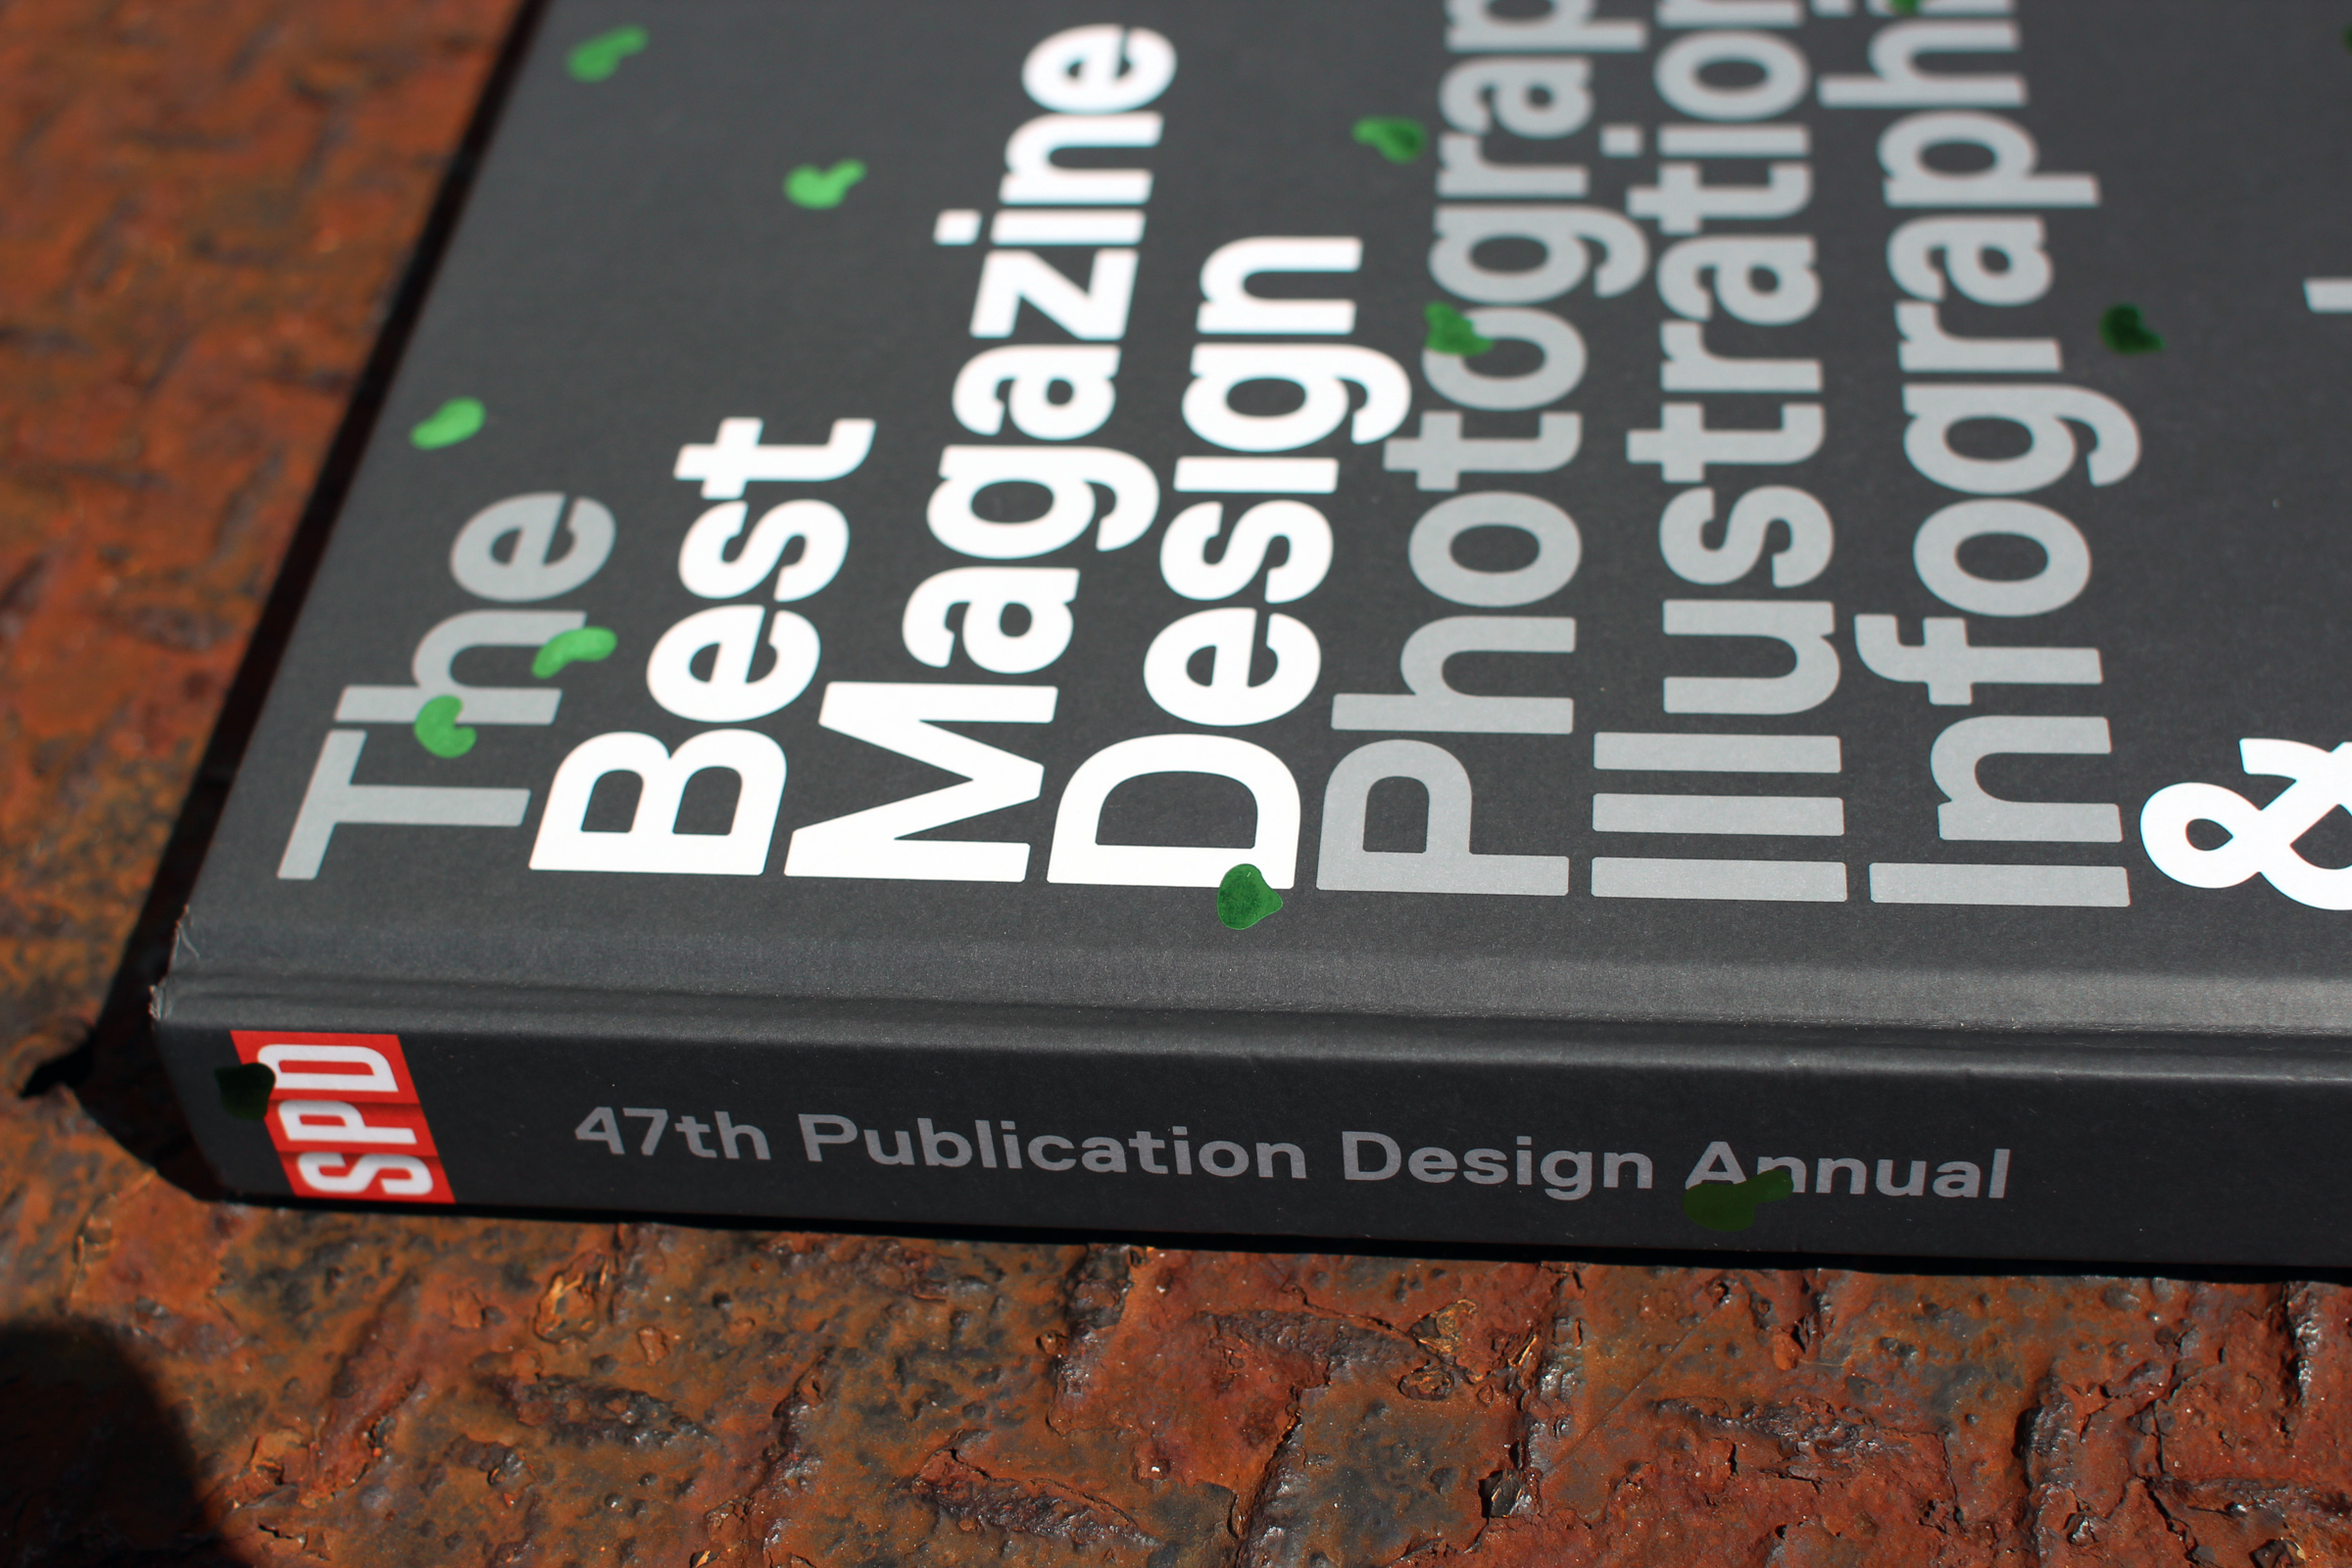 Photo of the cover of the Society of Publication Designer's 47th Annual.